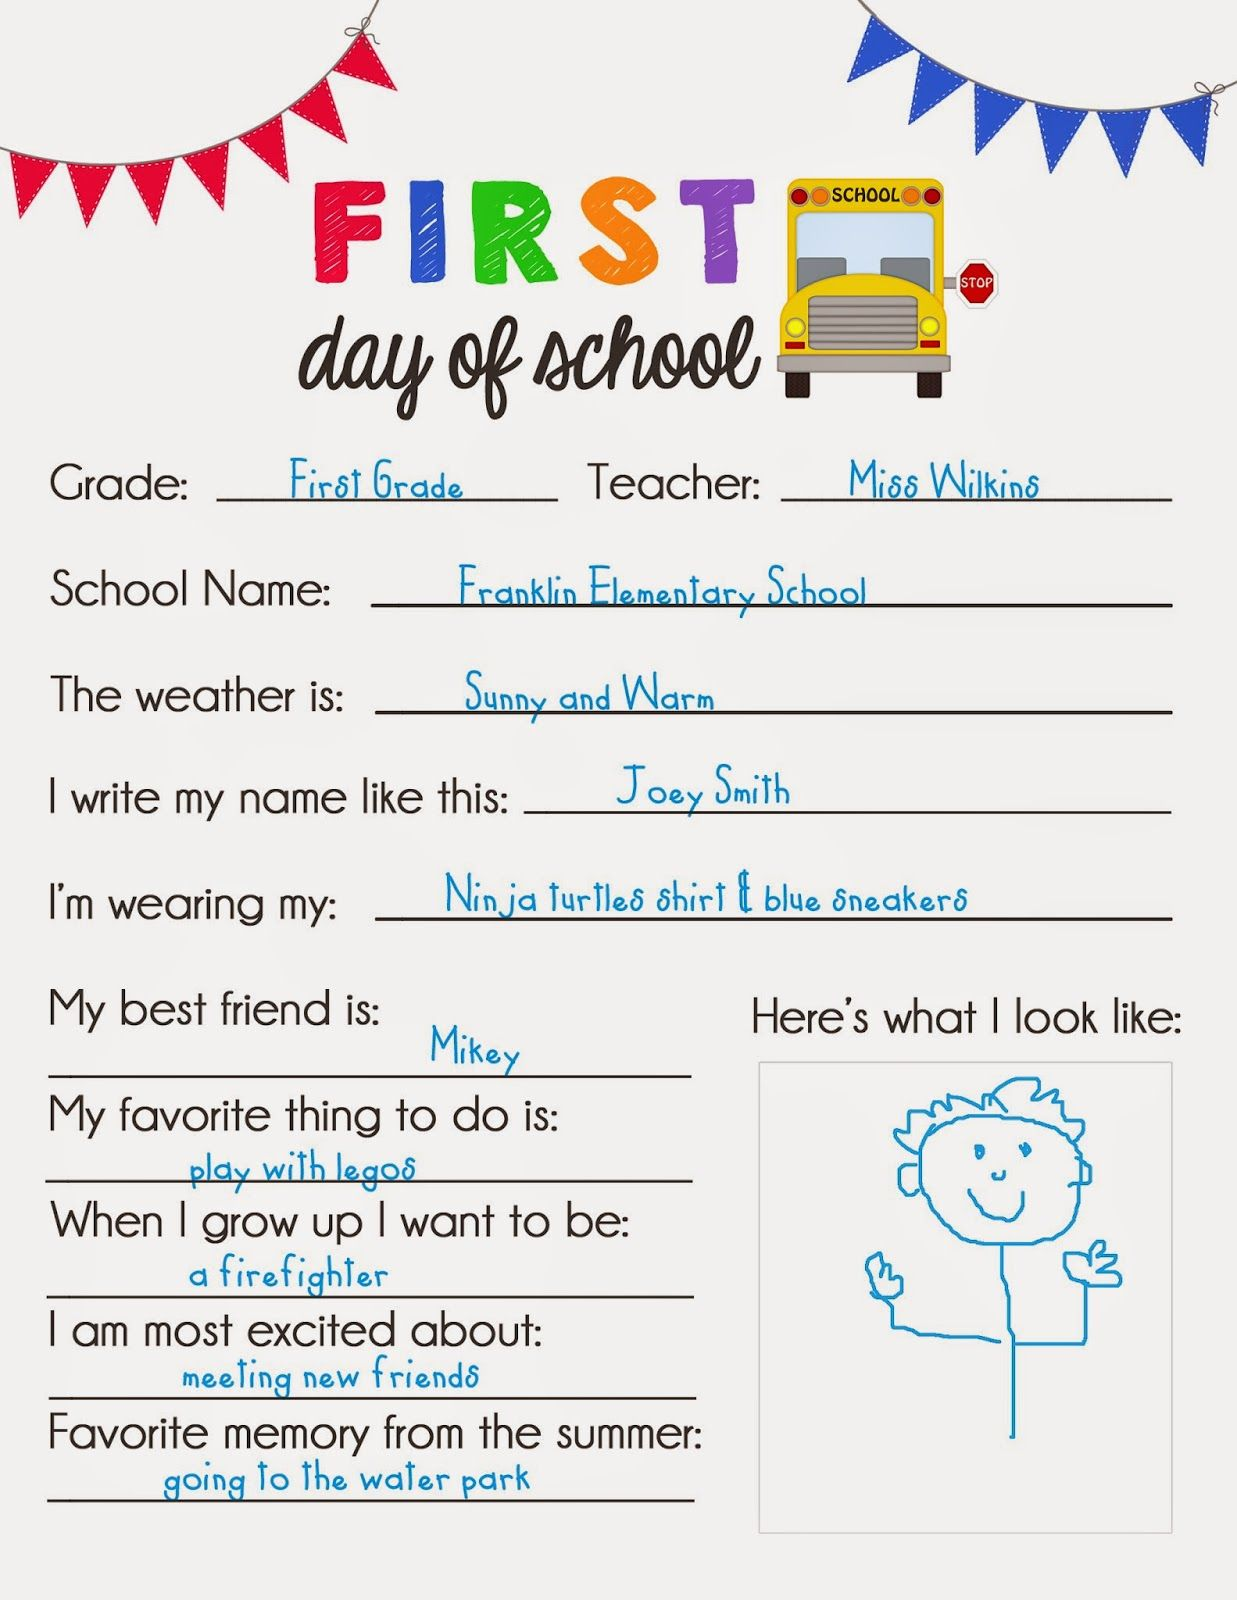 First Day Of School Questionnaire Survey Printable